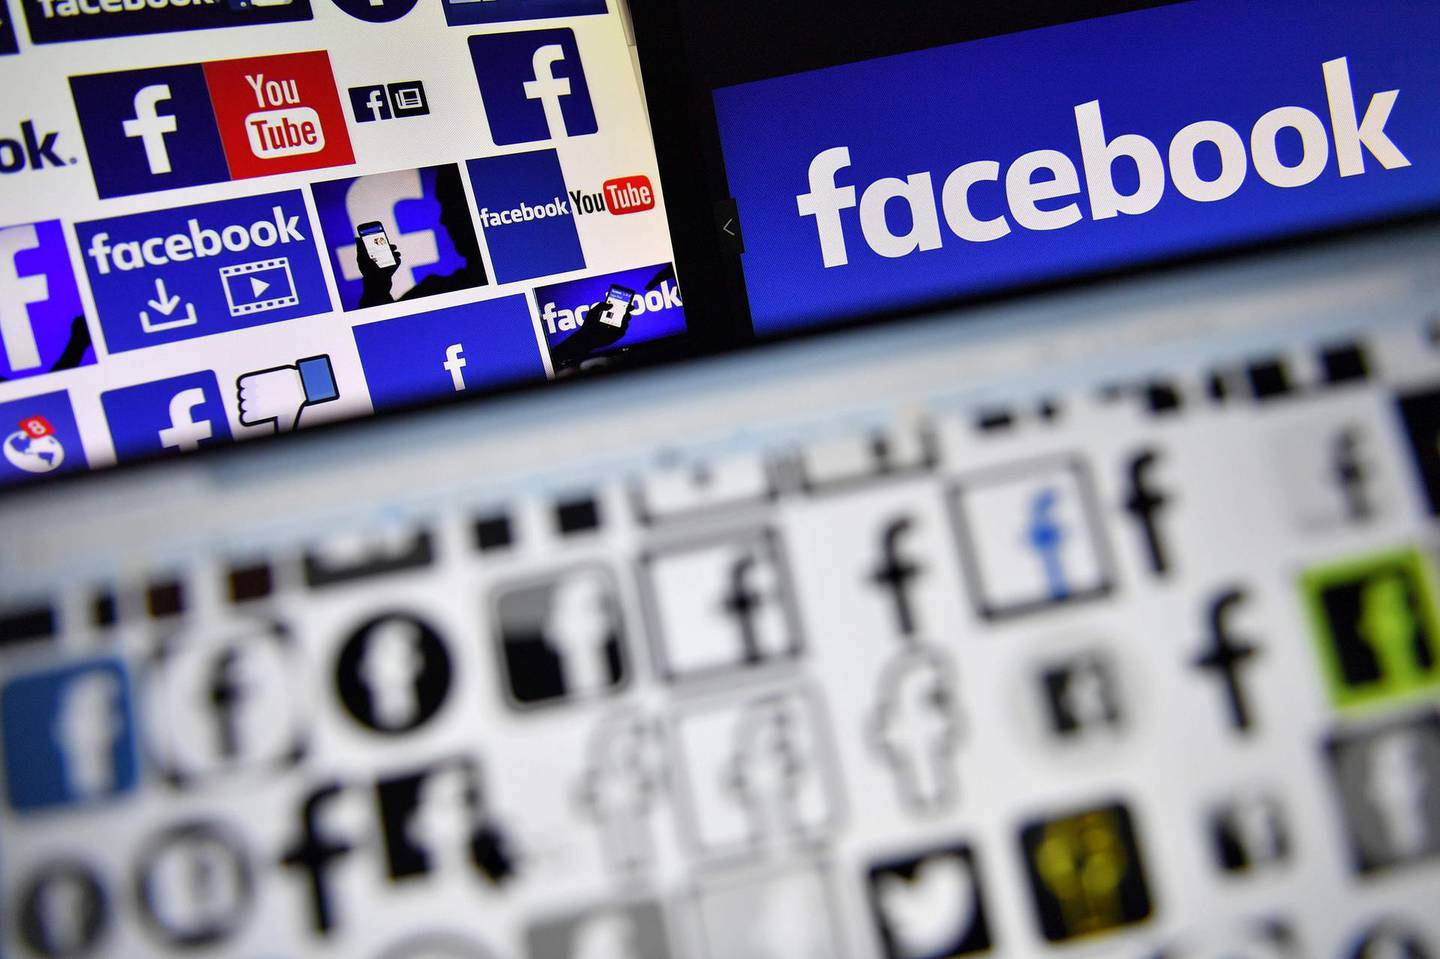 (FILES) This file photo taken on November 20, 2017 shows logos of US online social media and social networking service Facebook. Facebook announced on May 24, 2018 it will apply to its users accross the world the EU's General Data Protection Regulation (GDPR). The GDPR, which comes into effect on May 25, 2018, aims to give users more control over how their personal information is stored and used online, with big fines for firms that break the rules.  / AFP / LOIC VENANCE